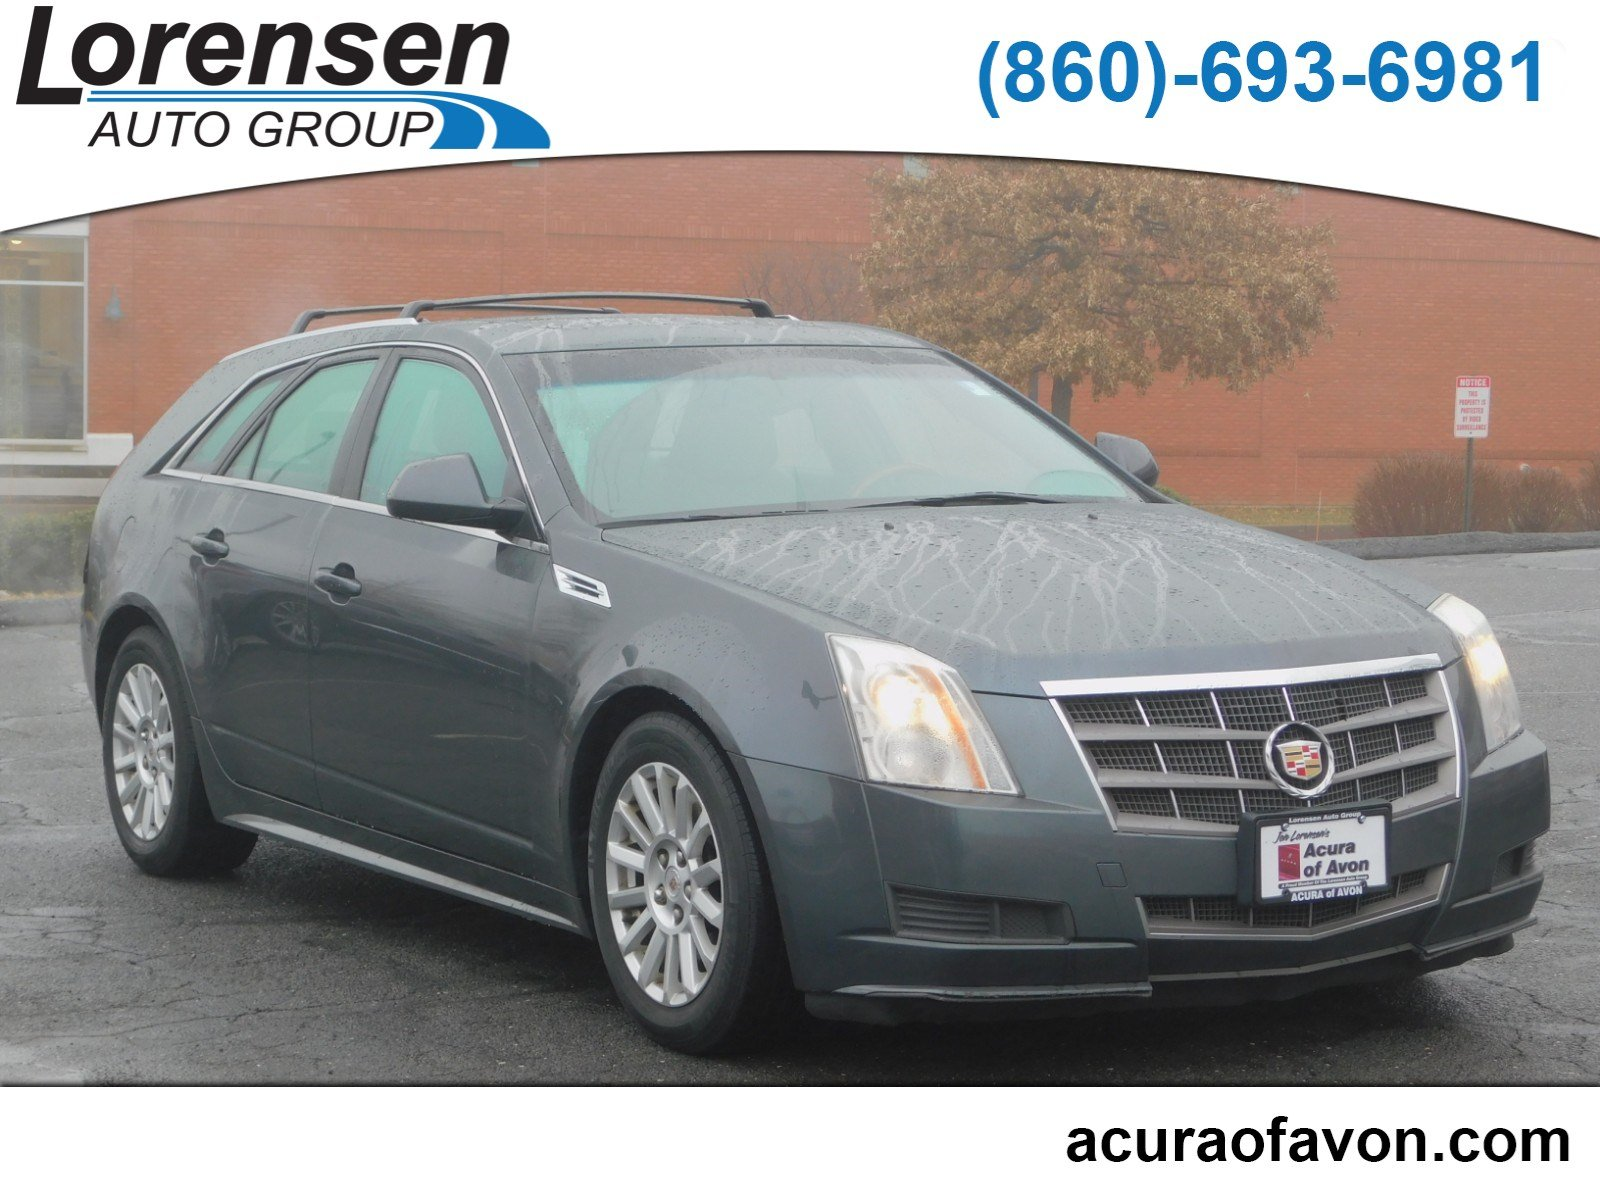 Pre-Owned 2010 Cadillac CTS Wagon Luxury